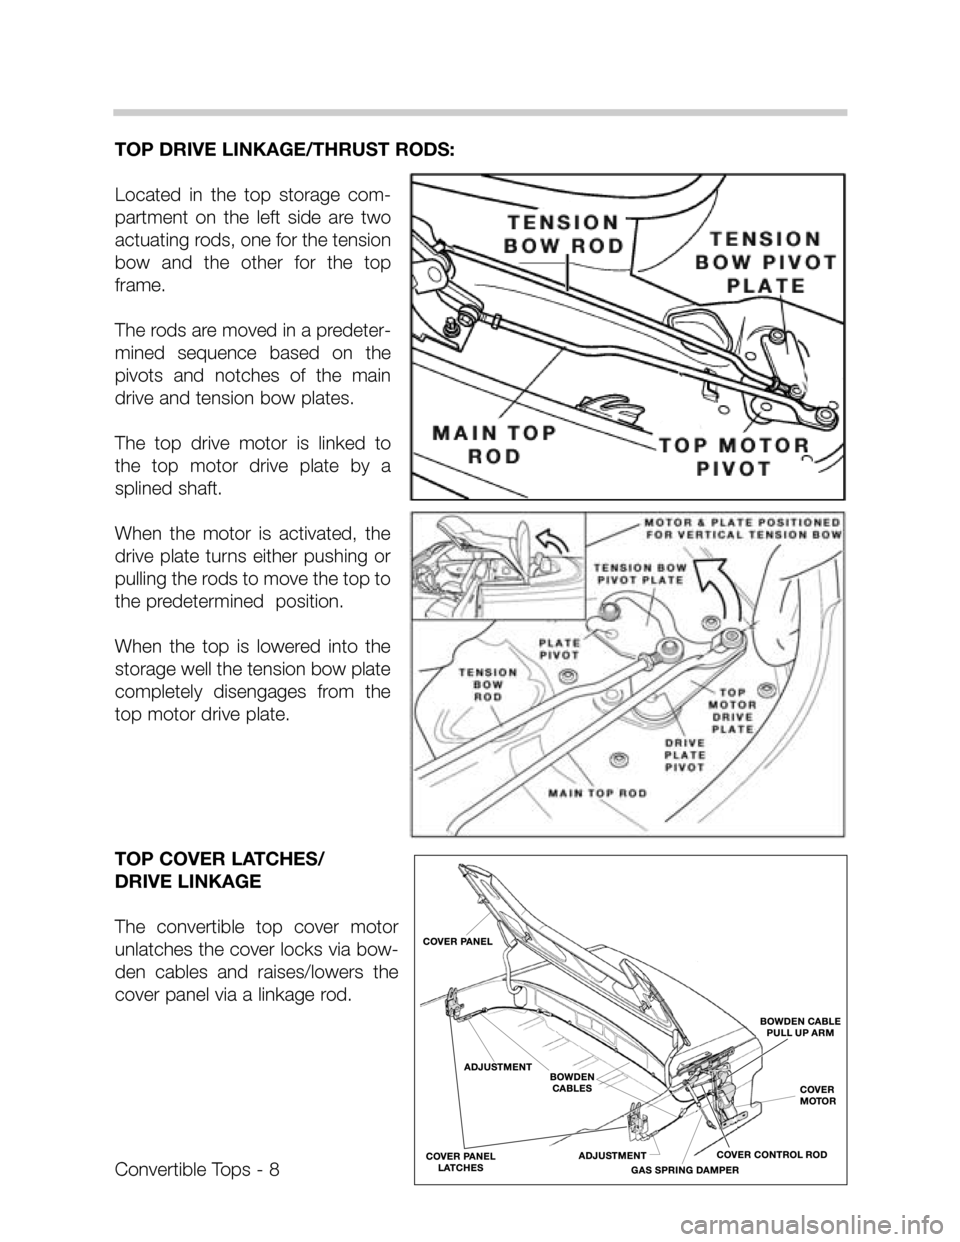 BMW Z3 CONVERTIBLE 1995 E36 Convertible Tops Manual, Page 8